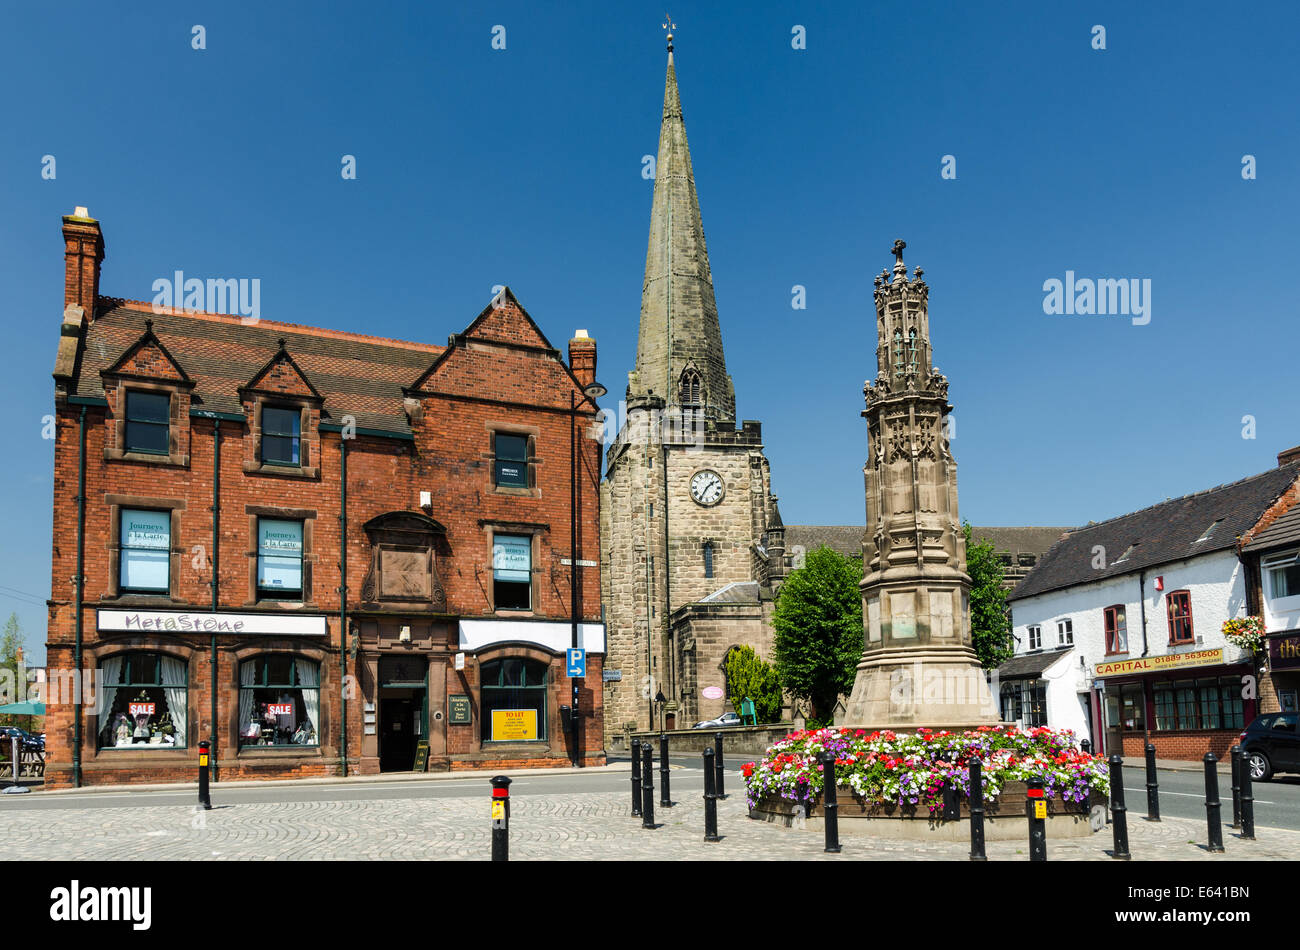 Market Place in the Staffordshire market town of Uttoxeter - Stock Image